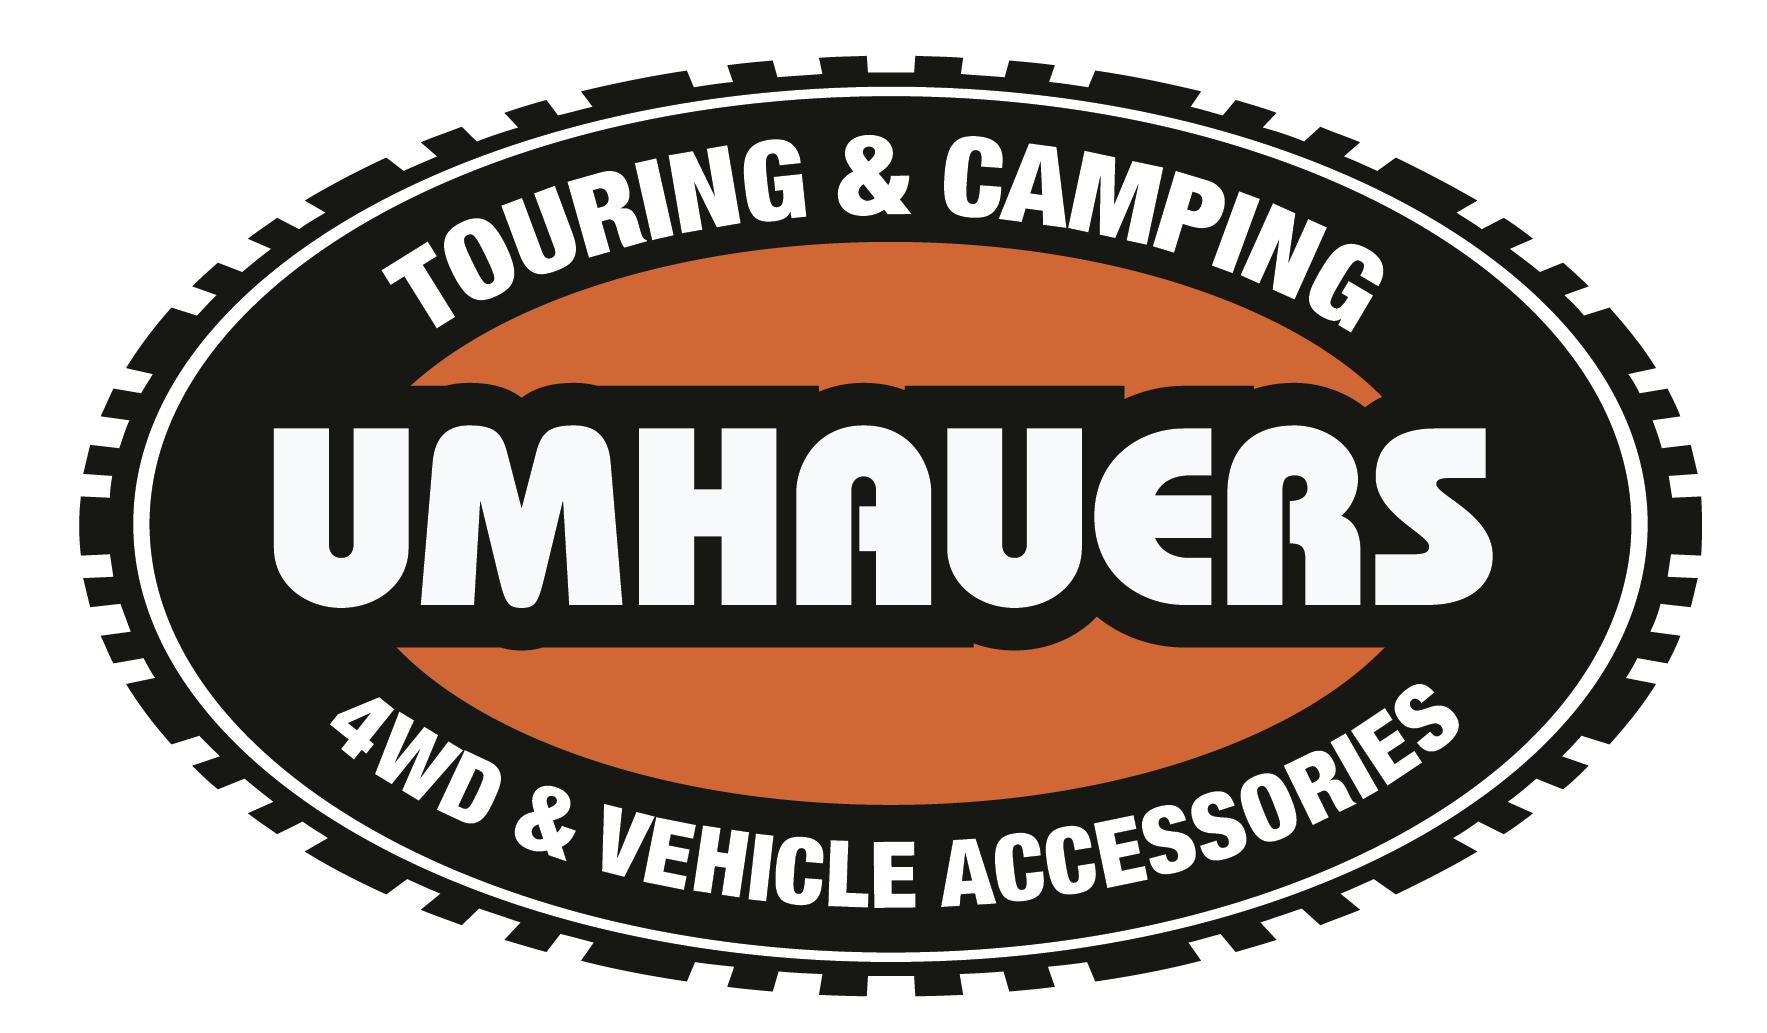 Umhauers - Palm Beach Accommodation